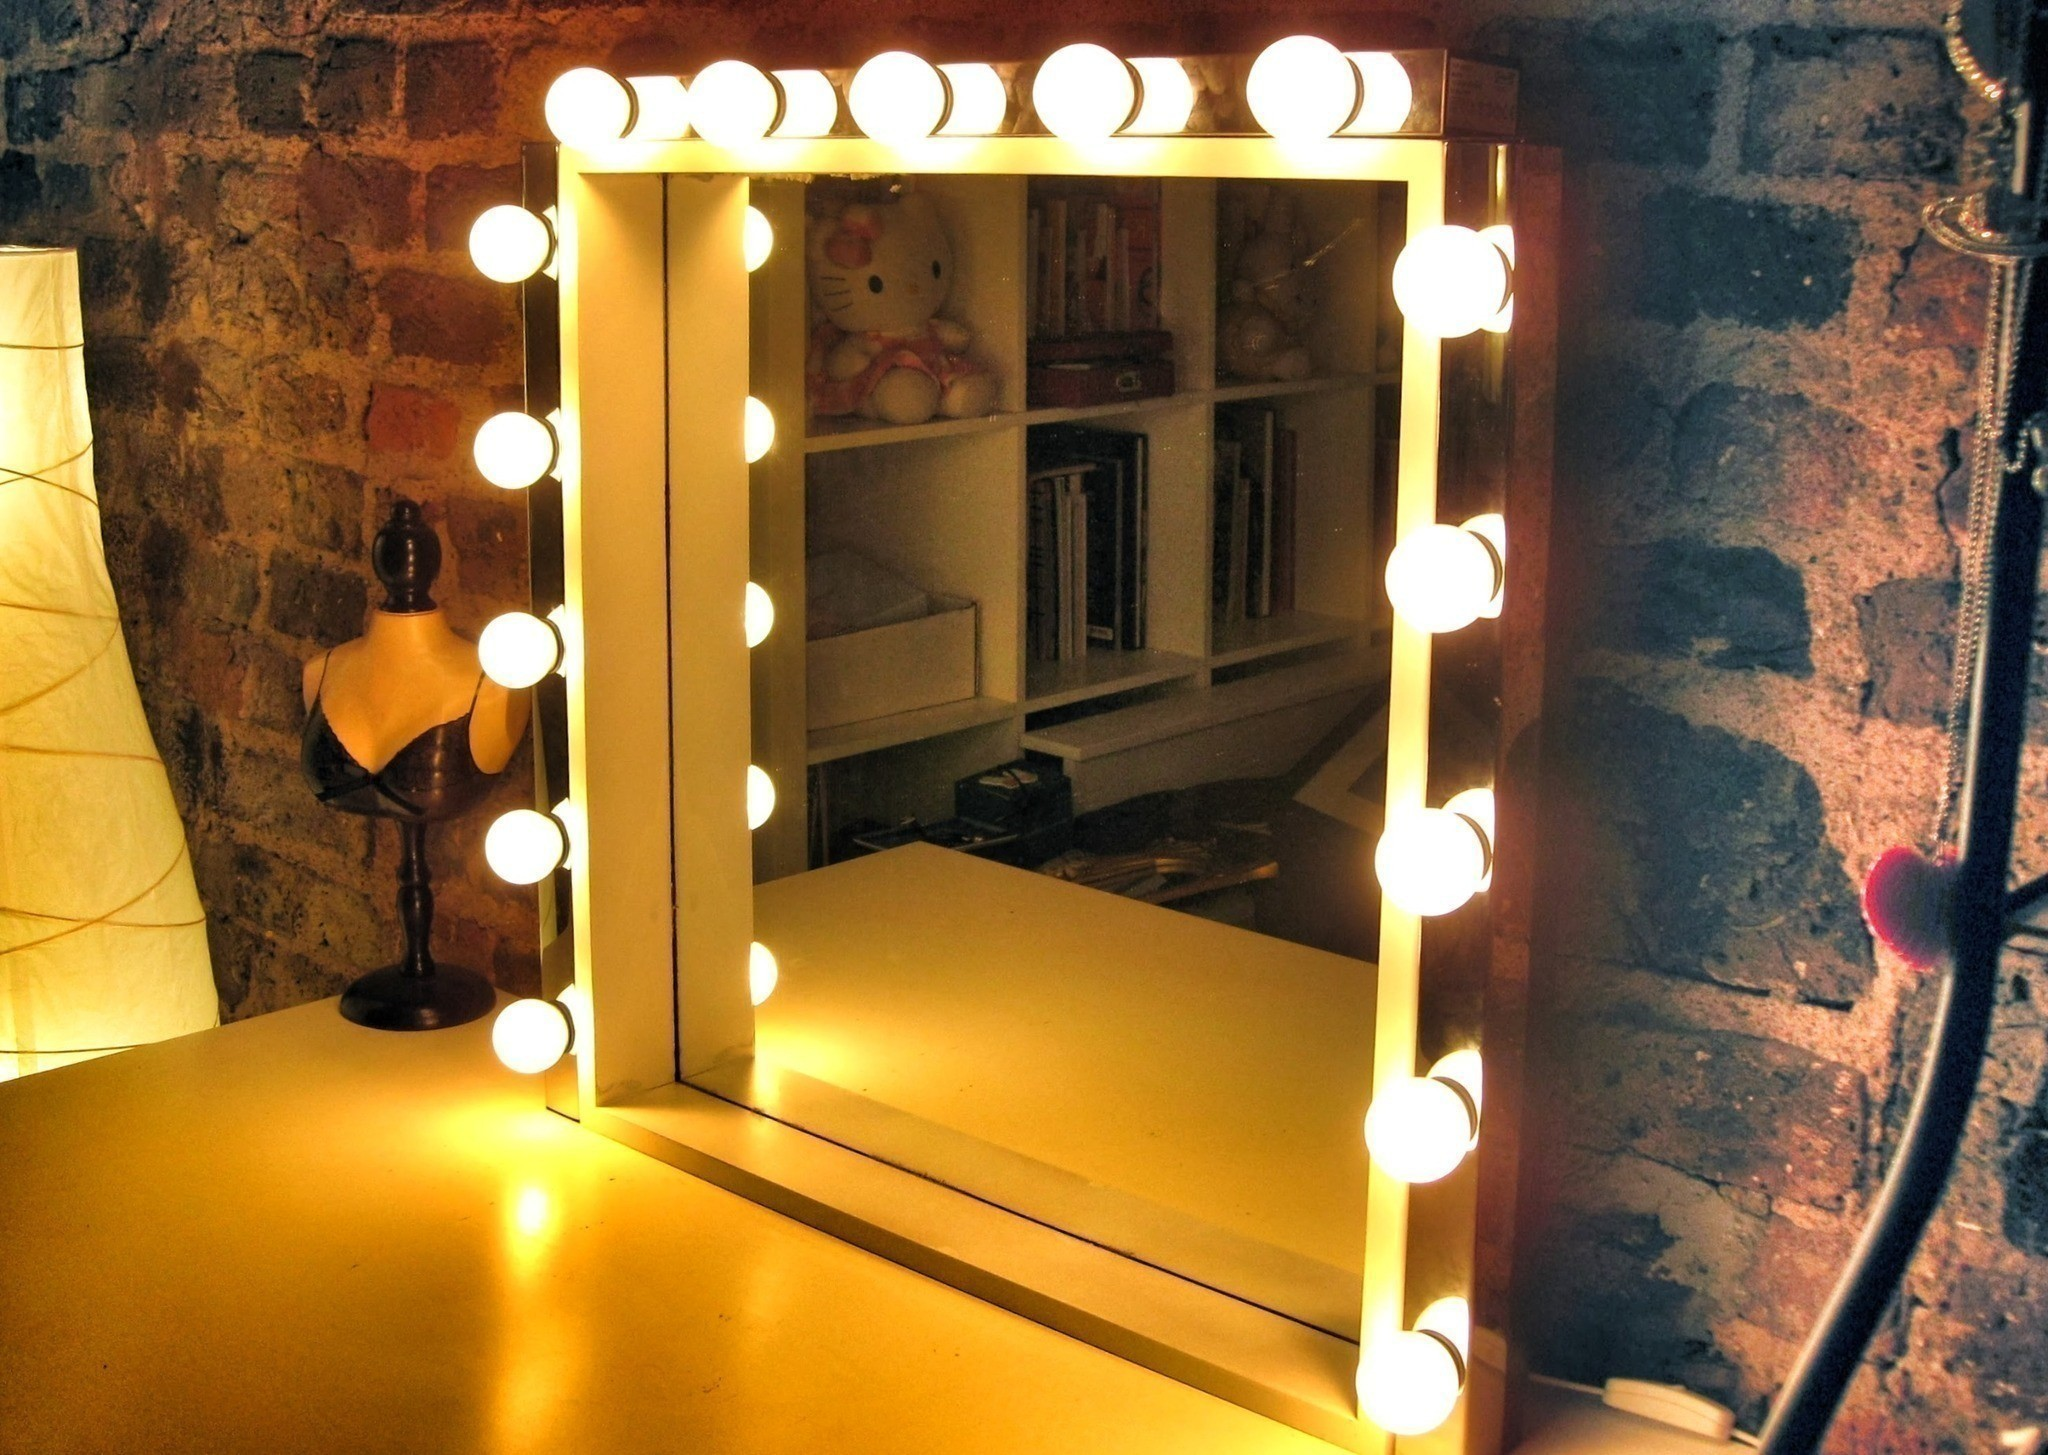 Starlet Mirror 183 How To Make A Table Mirror 183 Home Diy